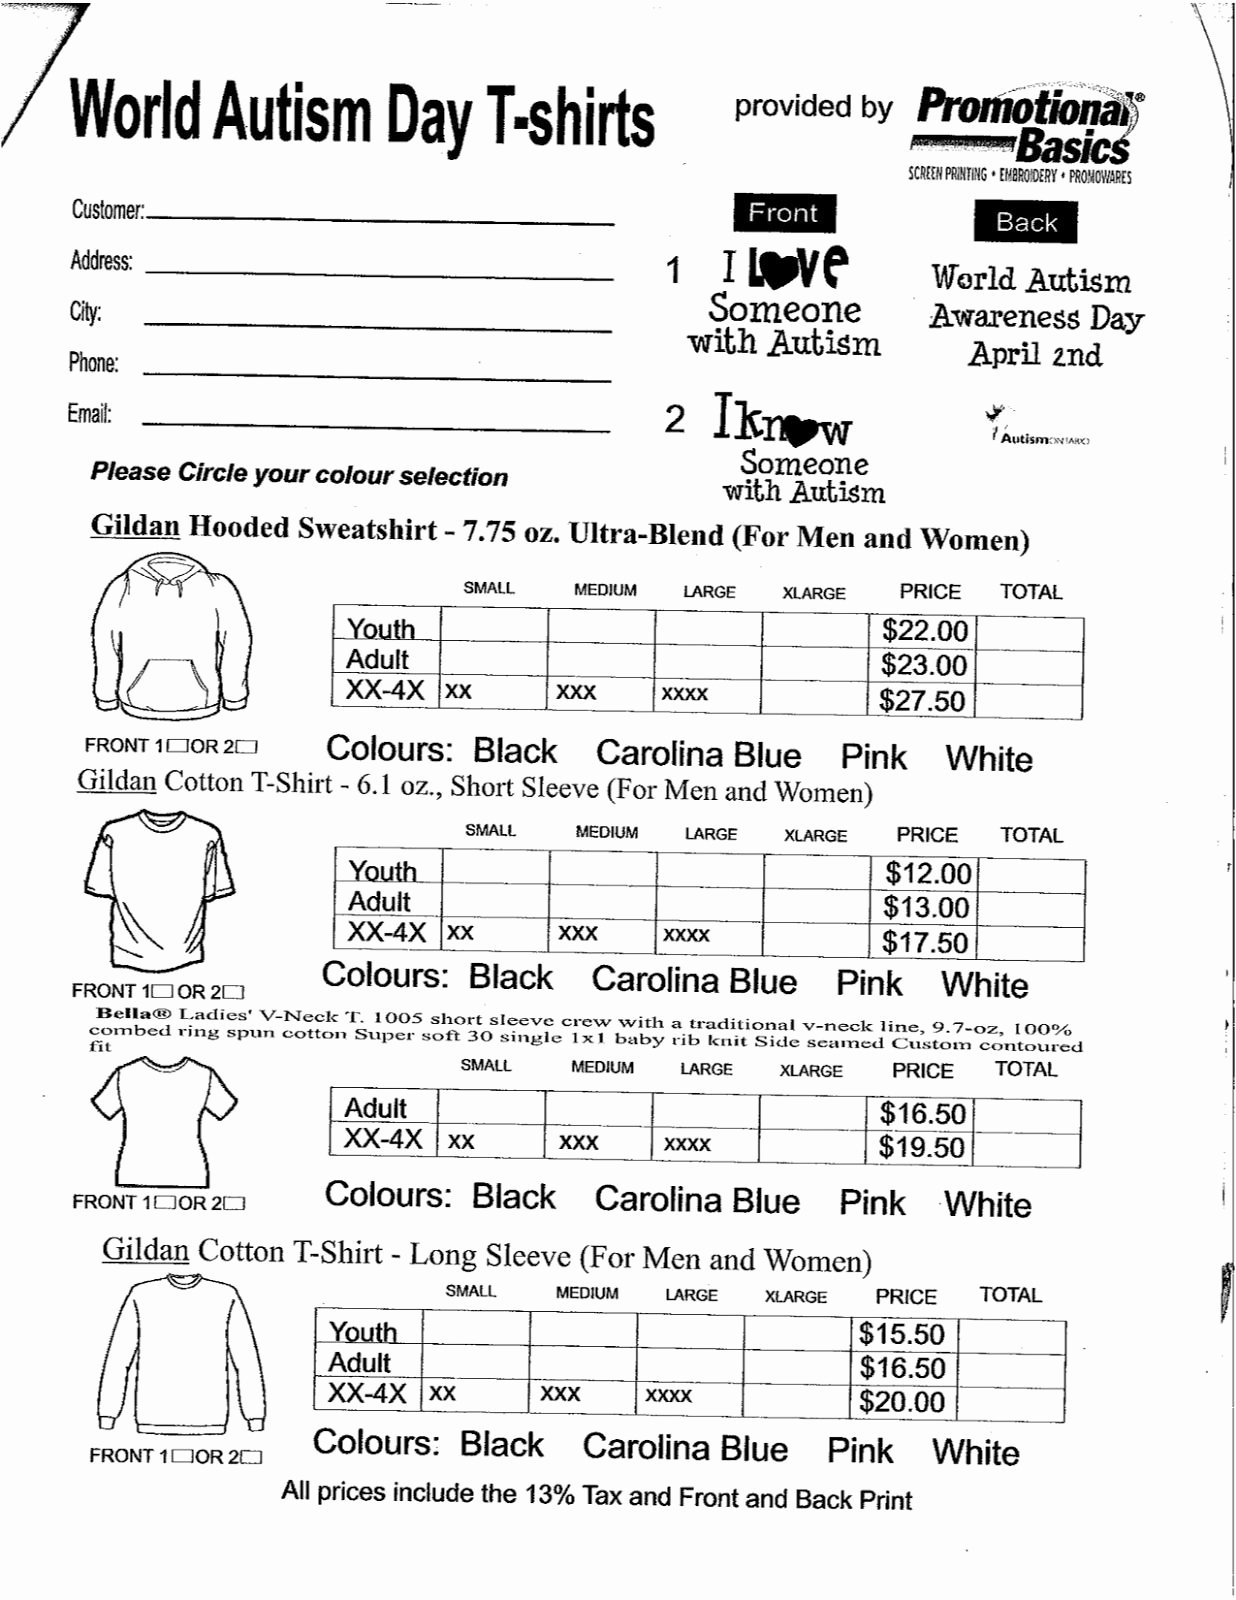 Clothing order form Template Awesome Spirit Wear form Pta Pinterest